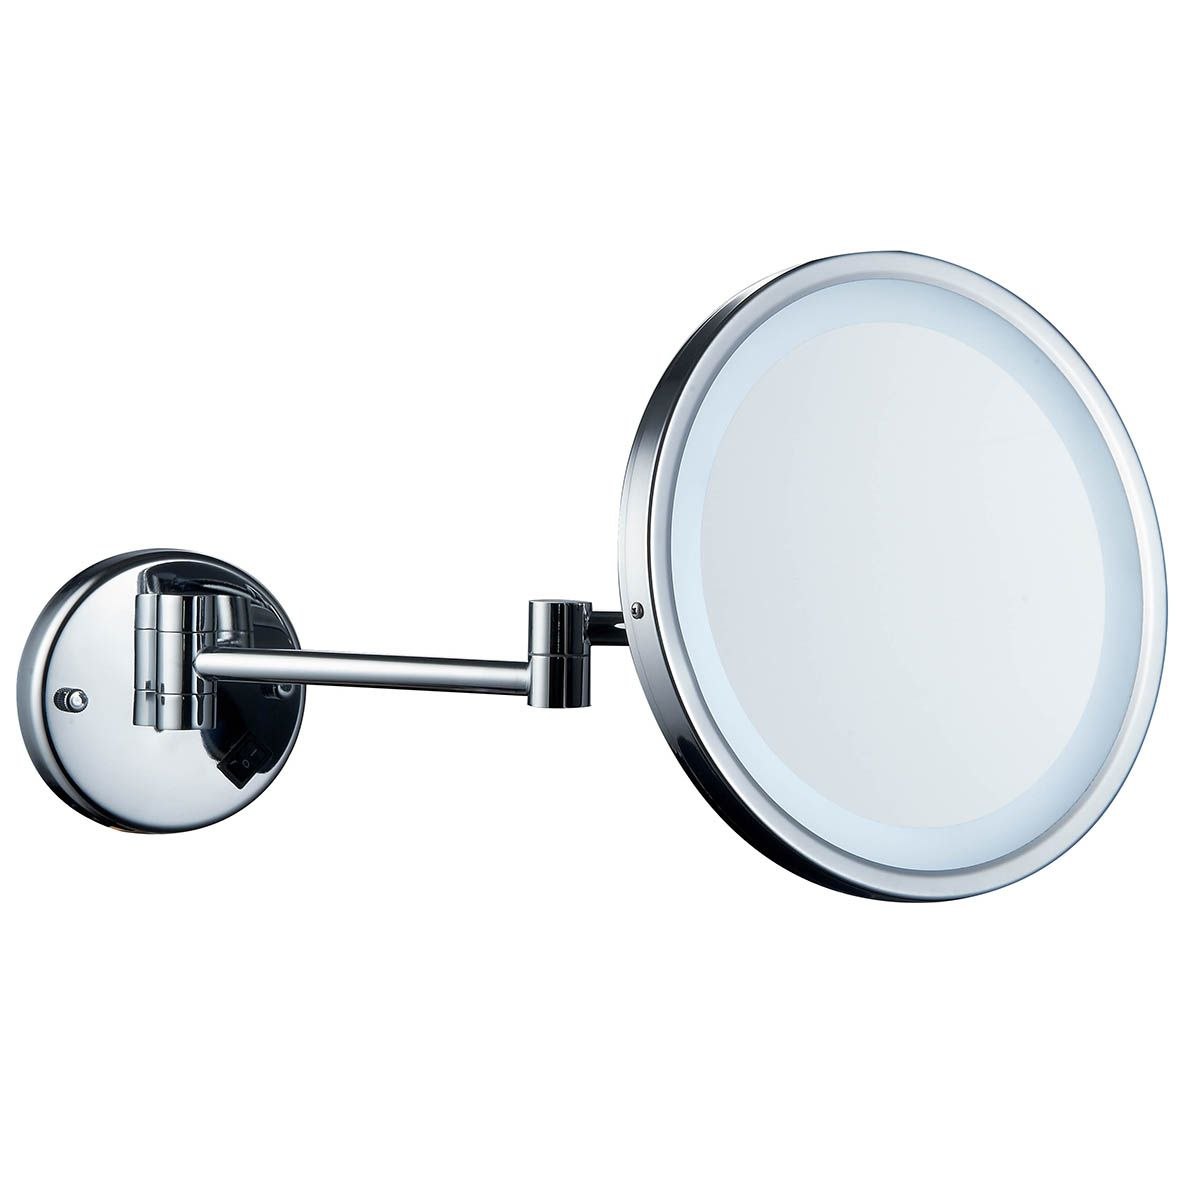 Excelvan 7x Magnification Wall Mount Makeup Vanity Mirror Jerdon Mounted Wiring Diagram 10 Inch Large Square Light Up Cosmetic